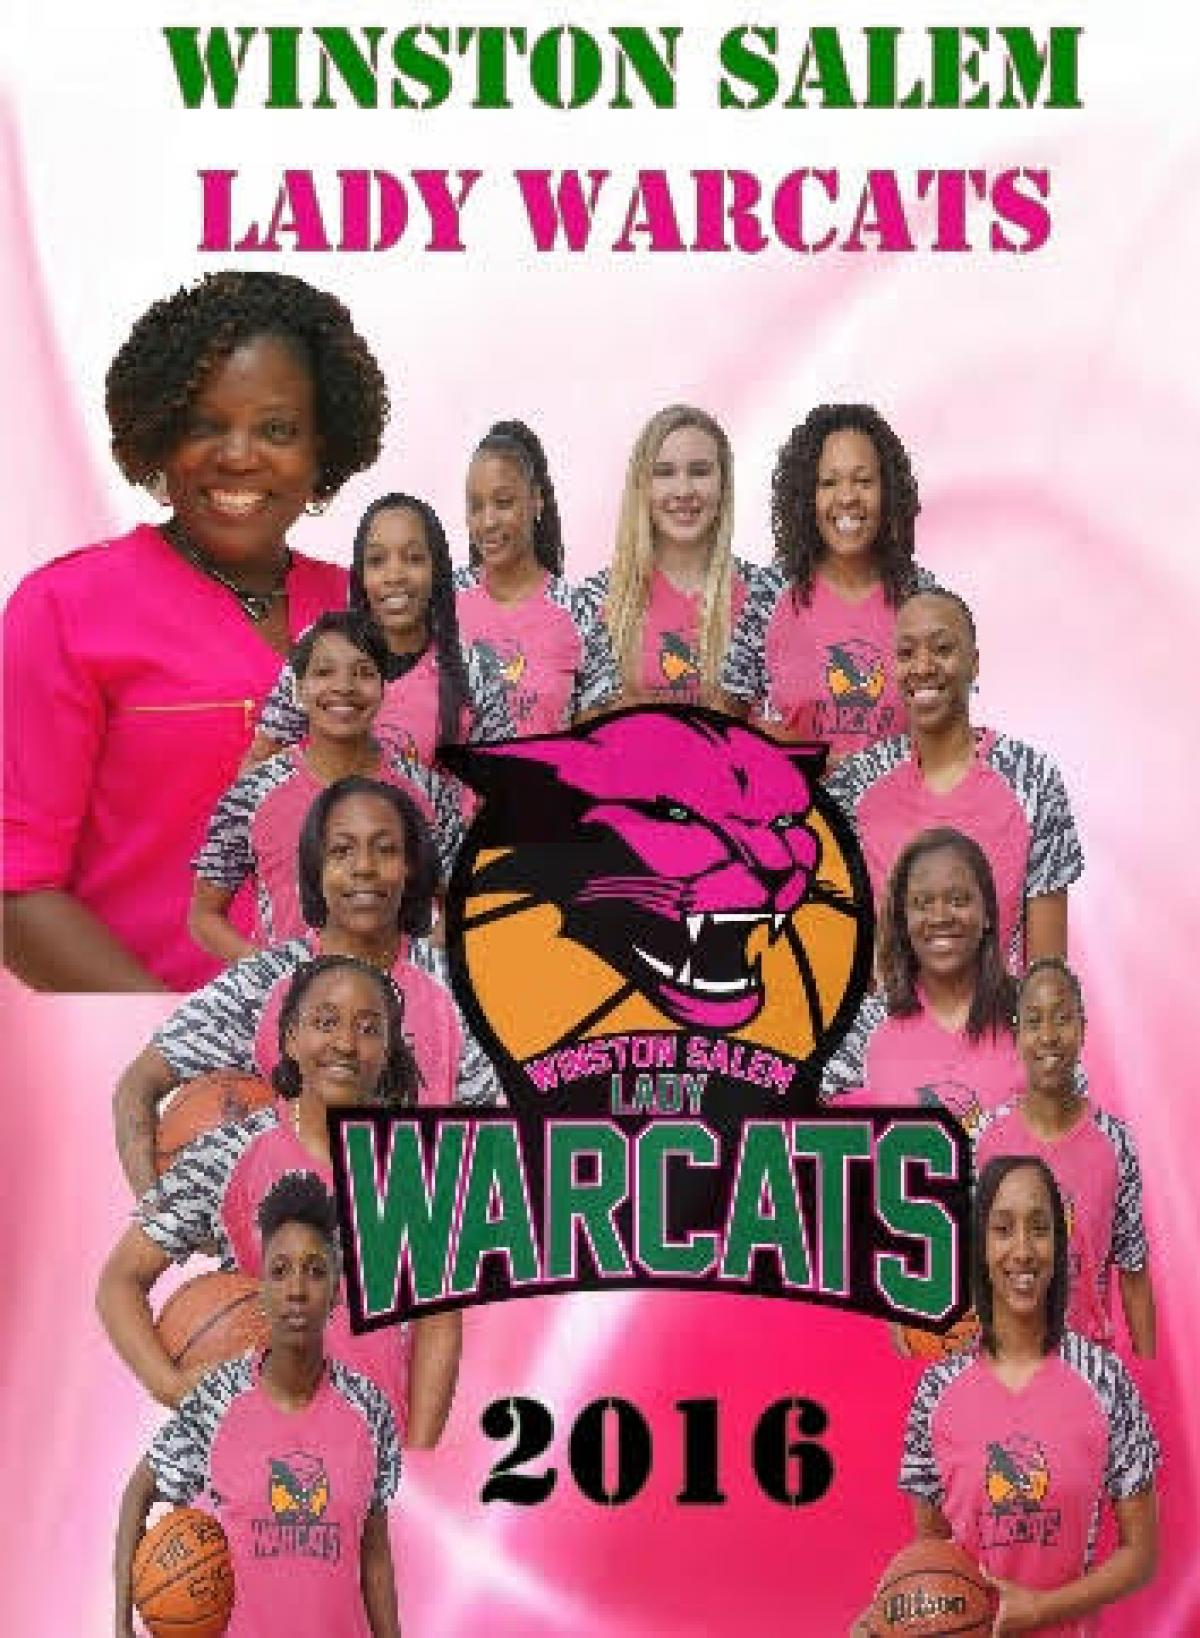 Winston Salem Lady Warcats' Media Day